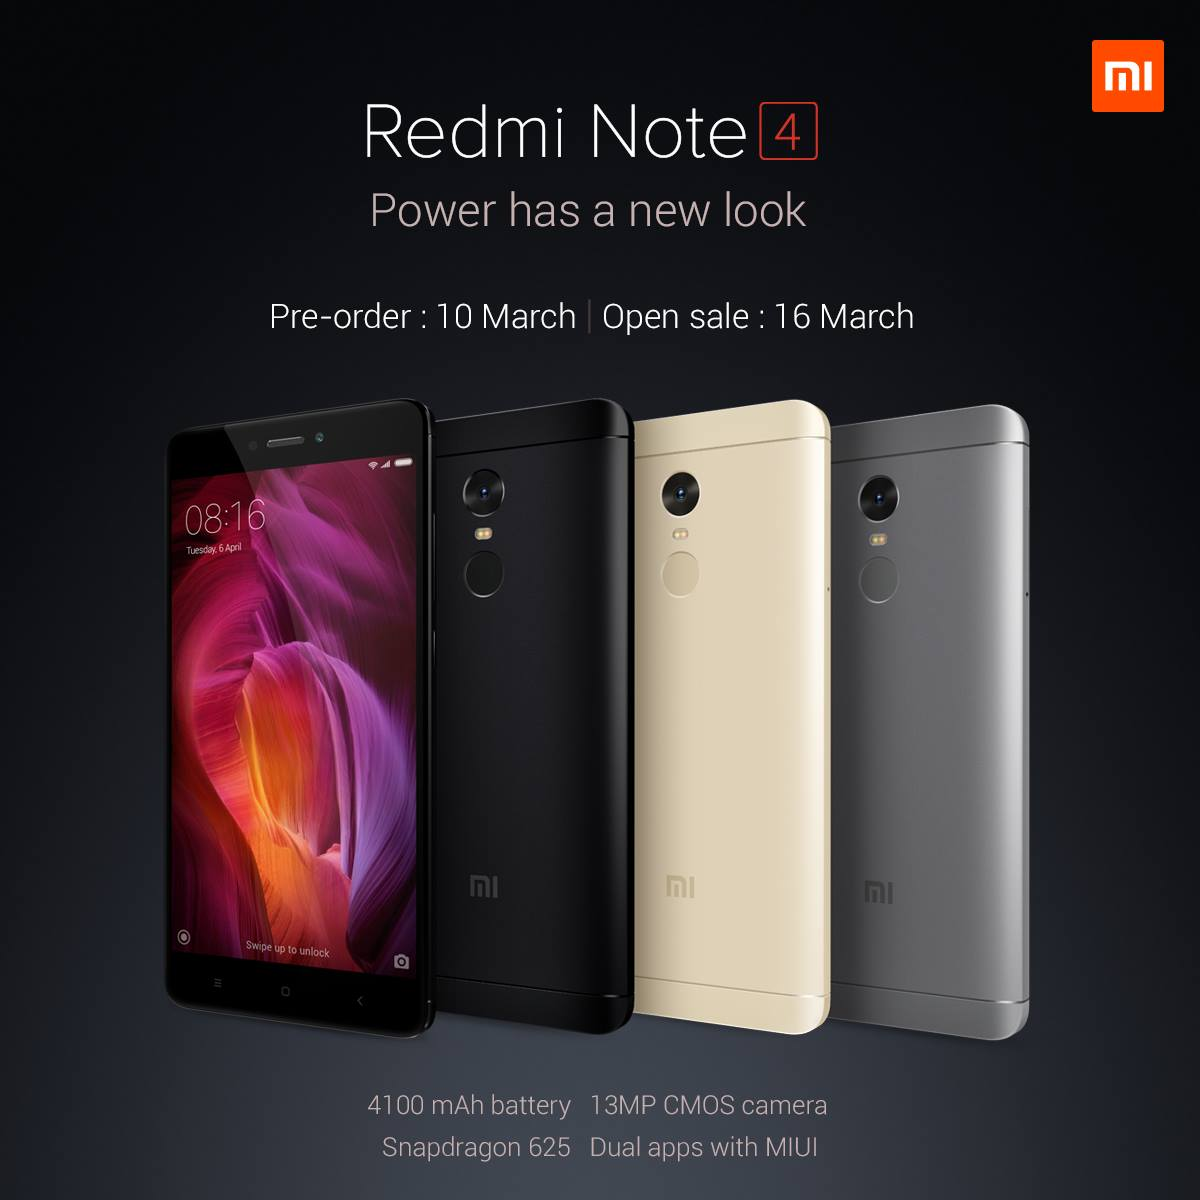 Xiaomi Redmi Note 4 is in Malaysia, pre-order starts 10 March